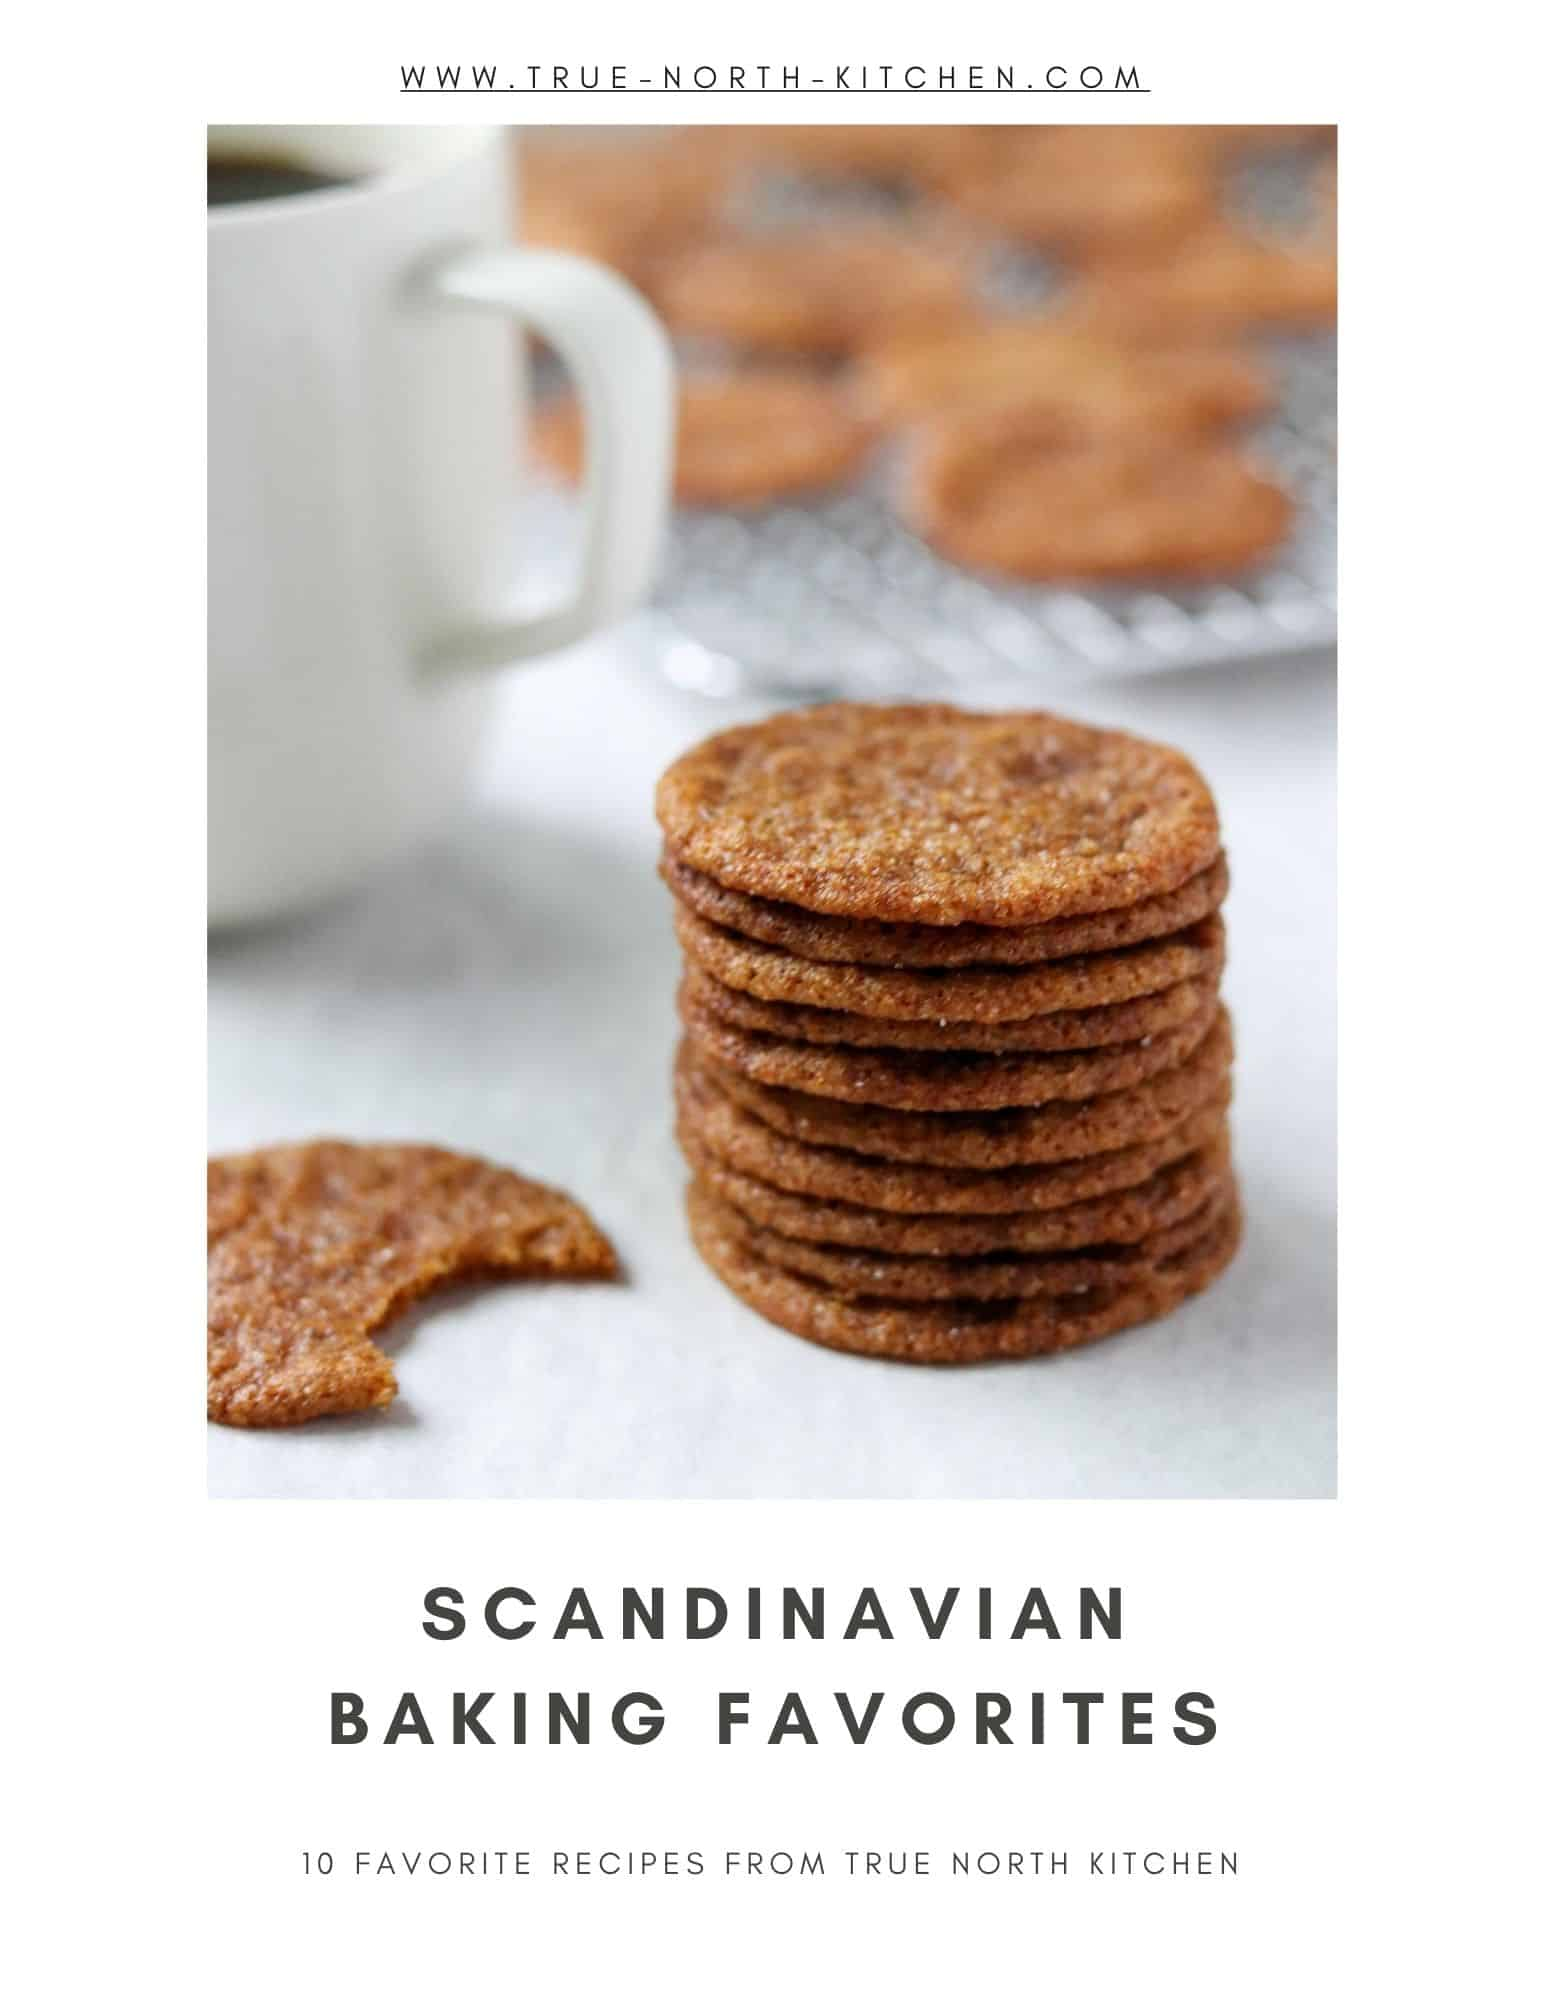 The cover for Scandinavian Baking Favorites e-book